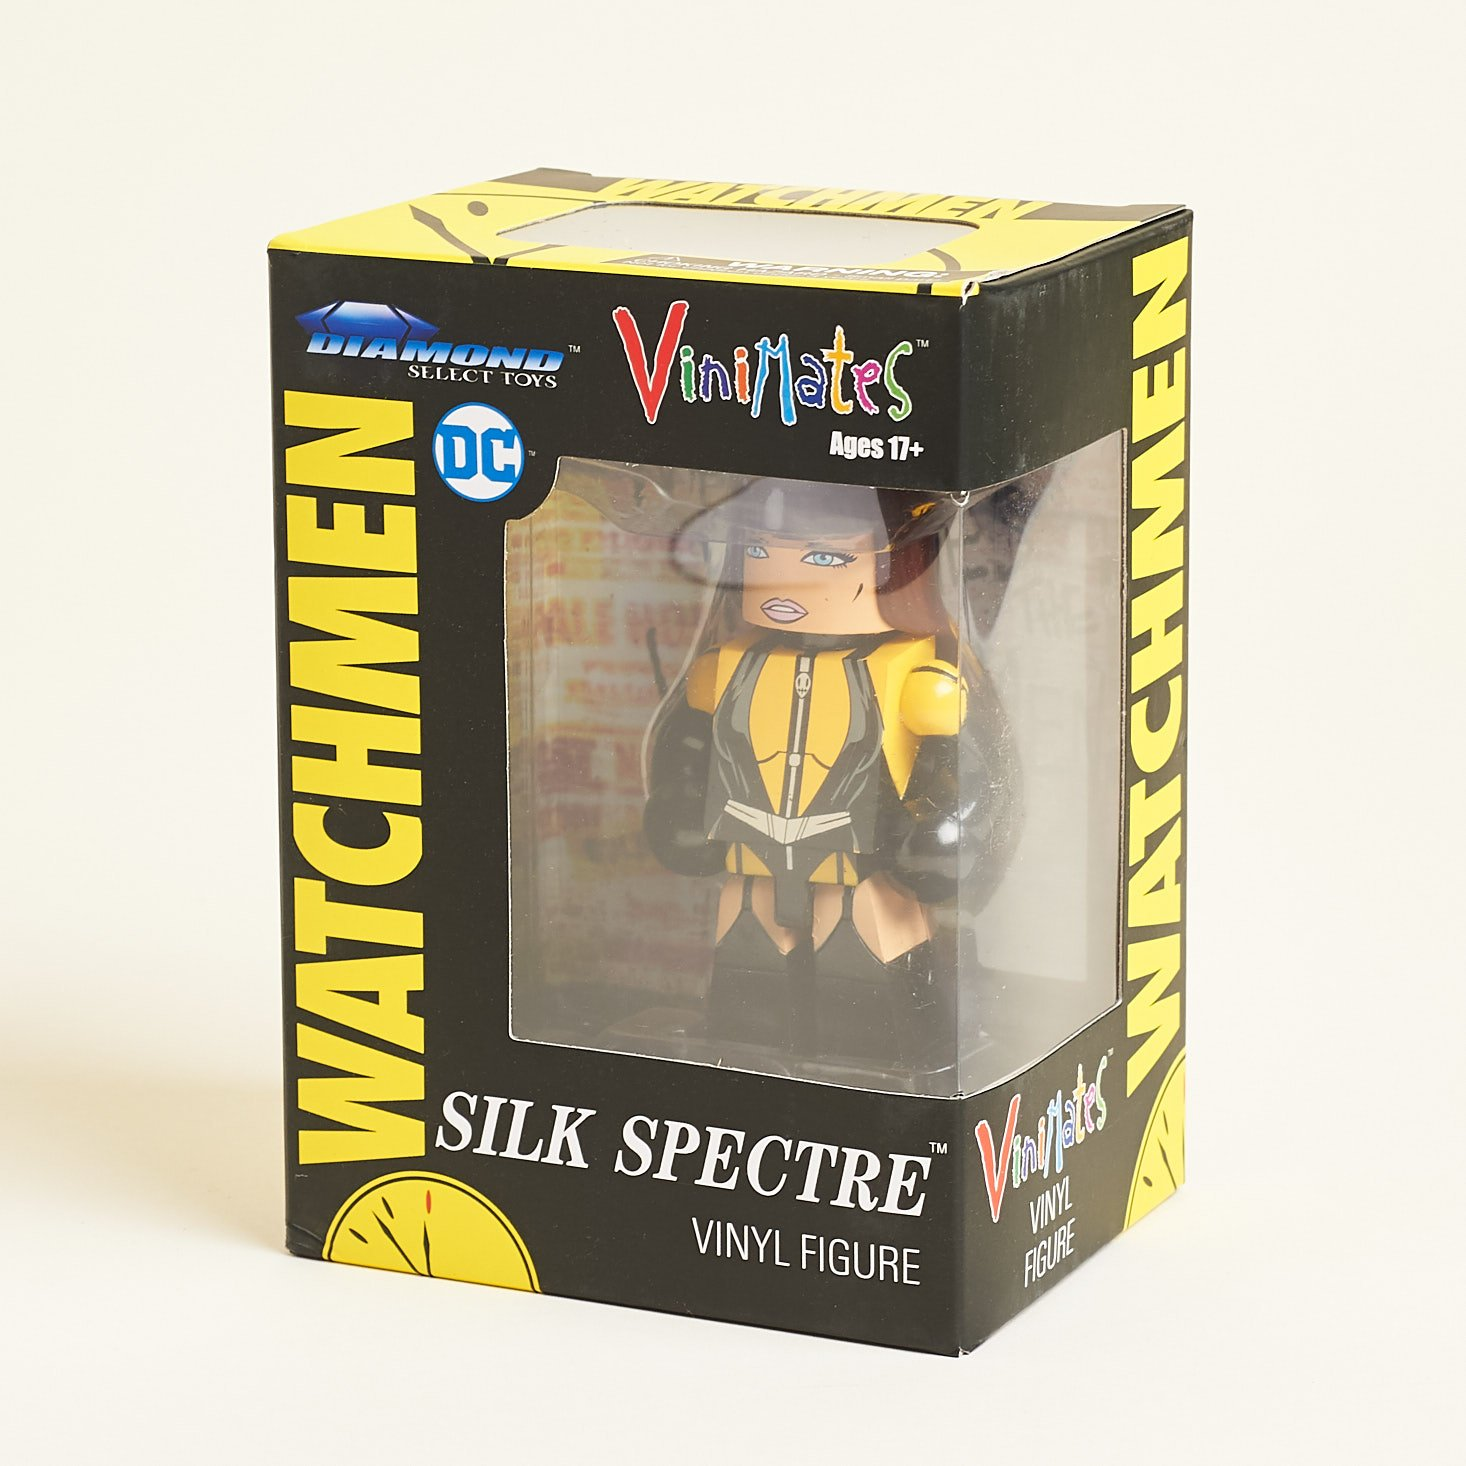 Zbox review May 2019 watchmen figure